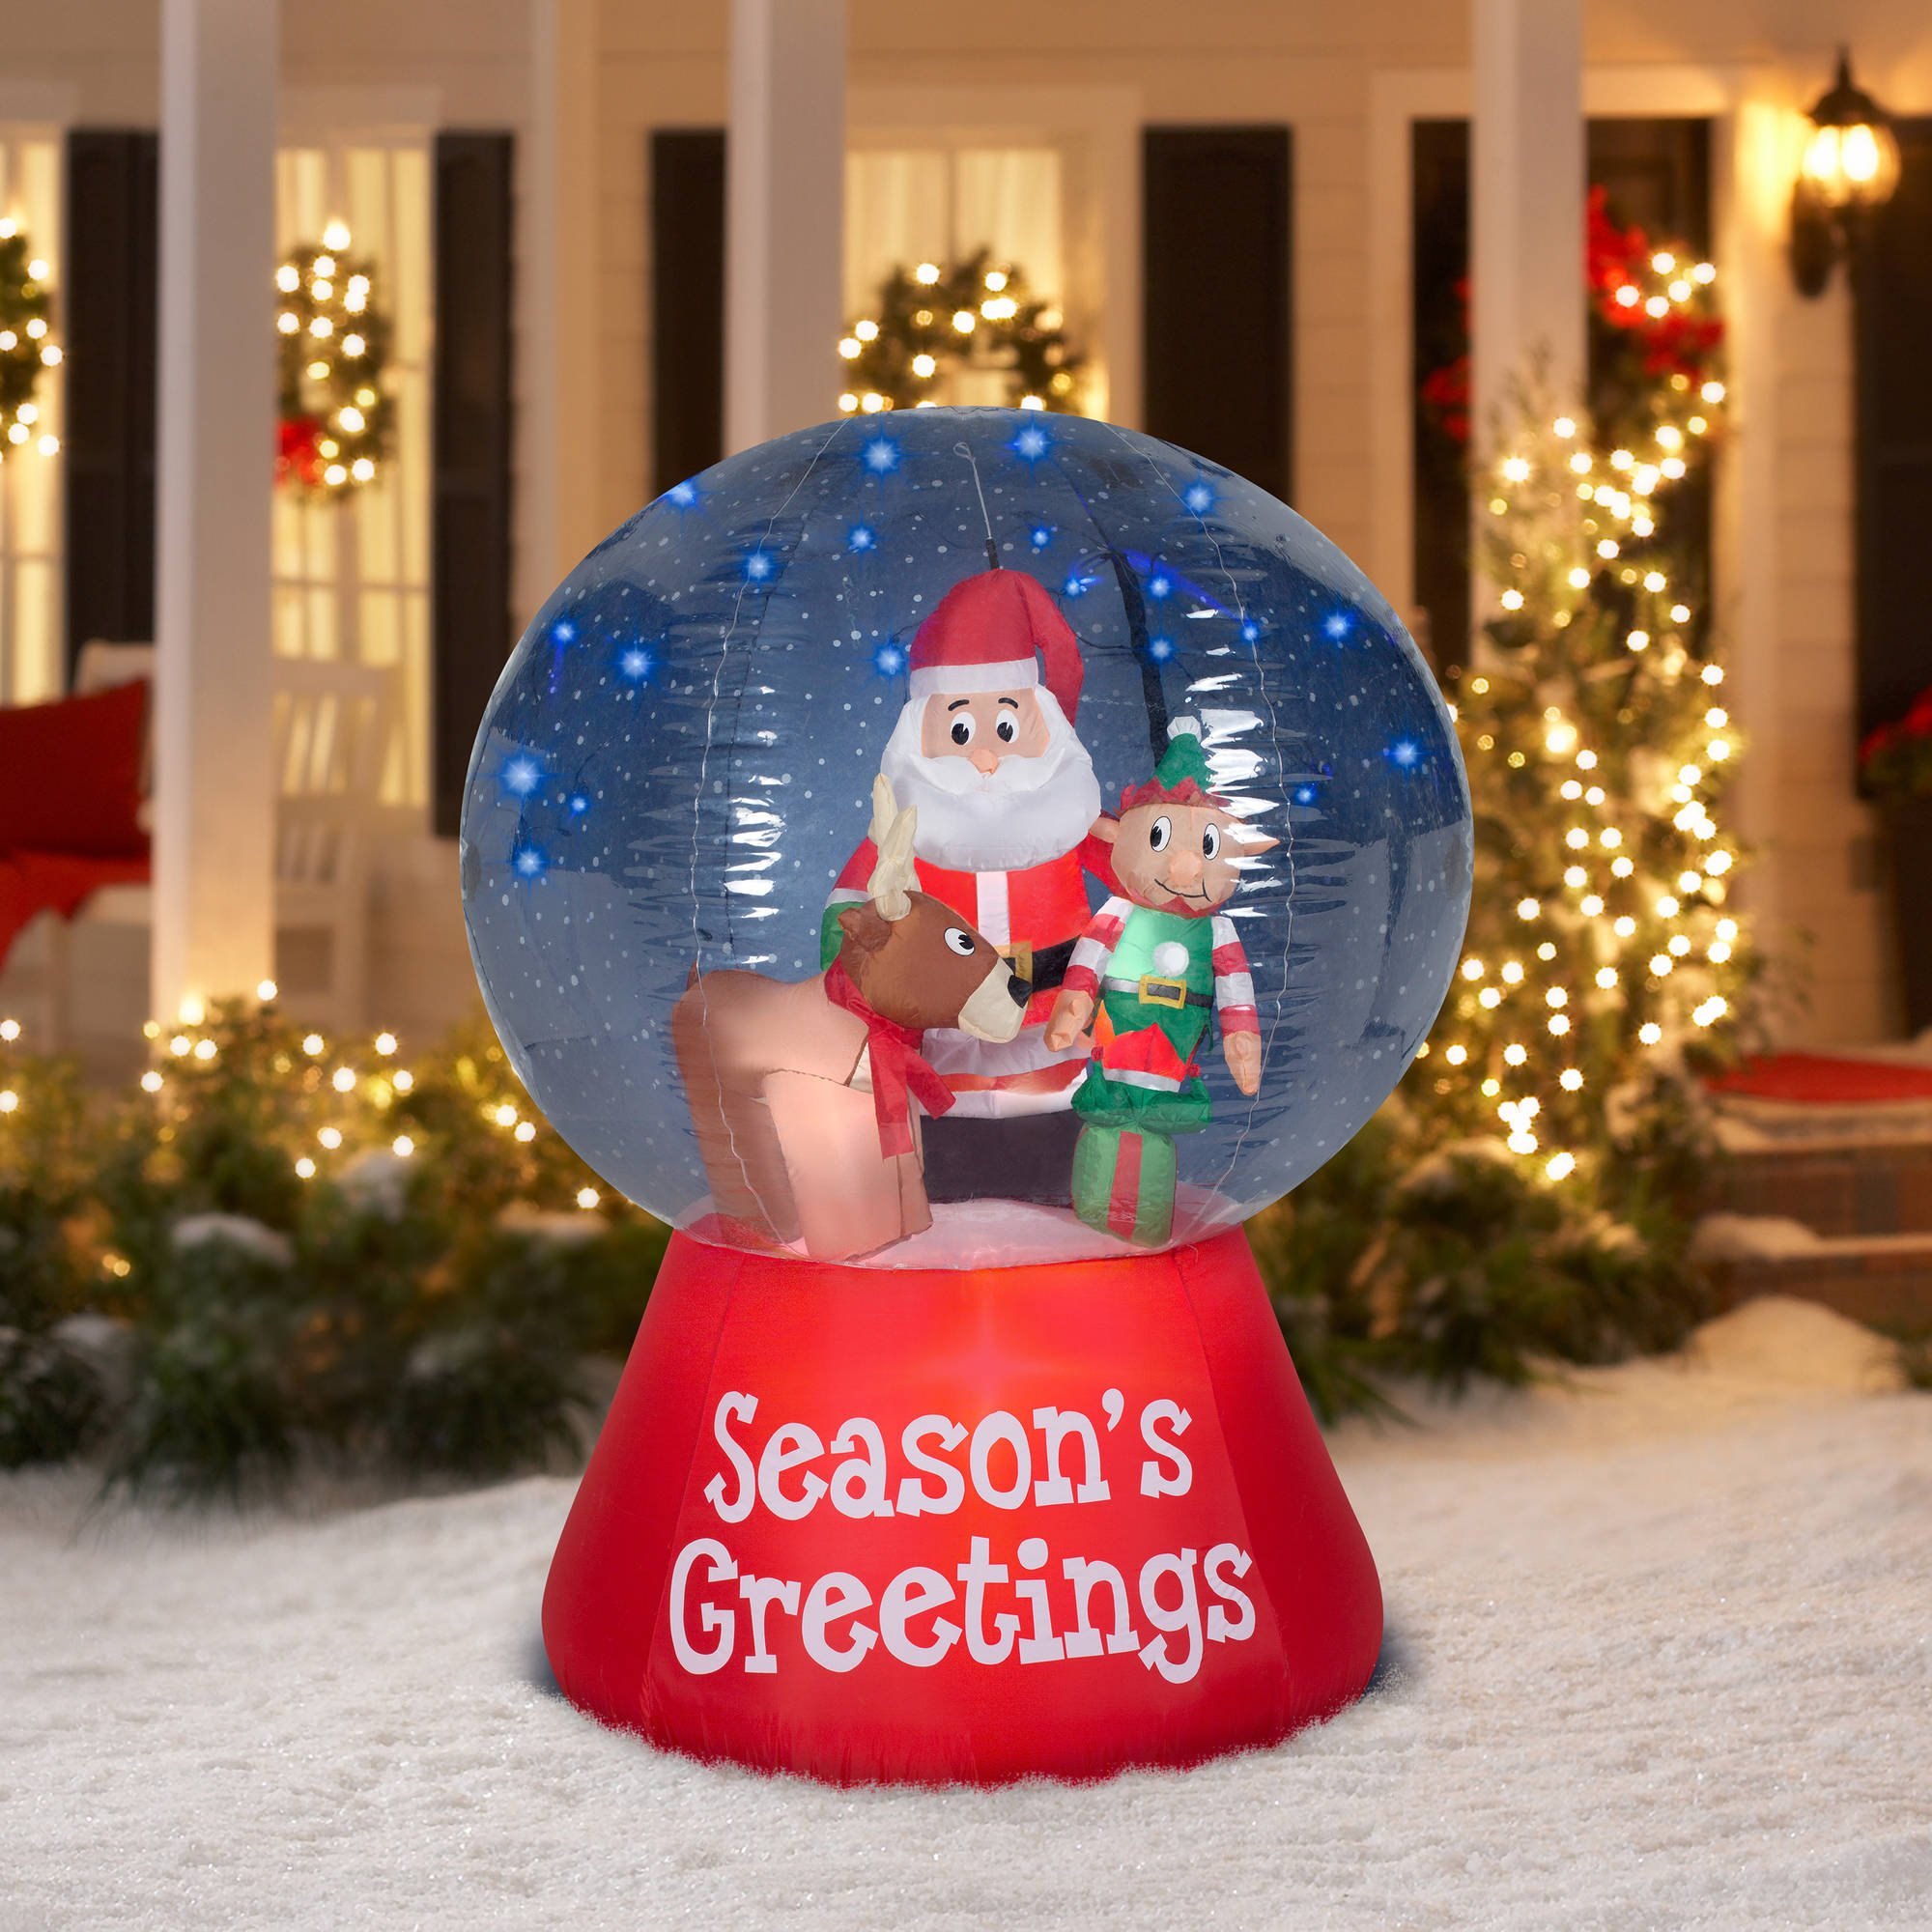 one of the faster selling animated outdoor christmas decorations still remains the large snow globes filled with various scenes - Large Outdoor Animated Christmas Decorations